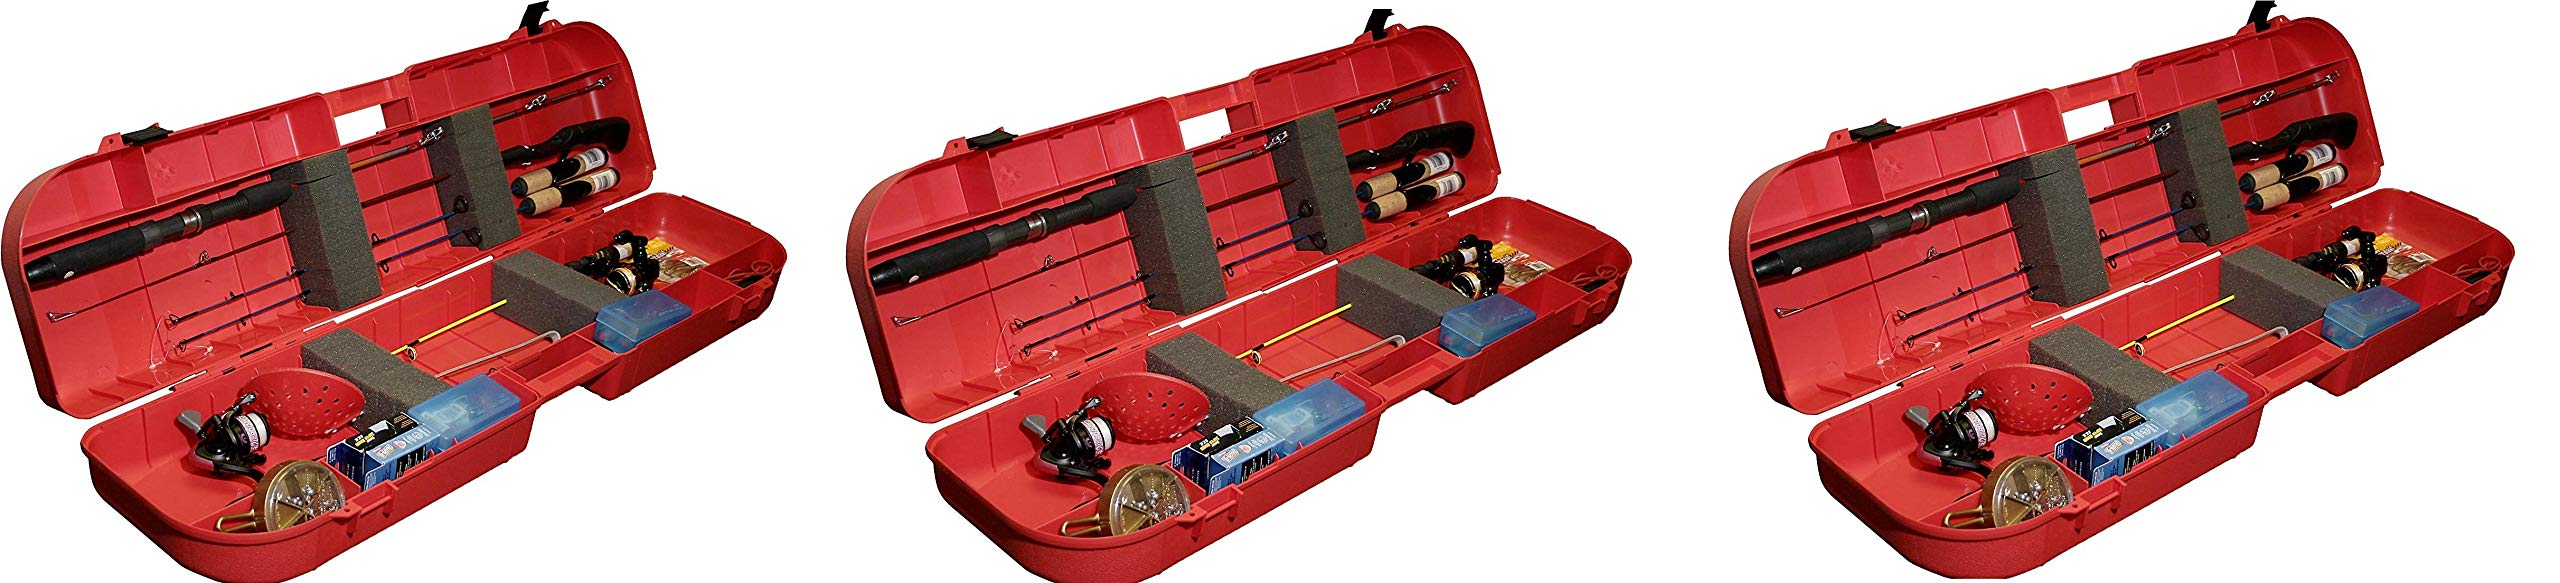 MTM Ice Fishing Rod Box (Red) (Pack of 3)